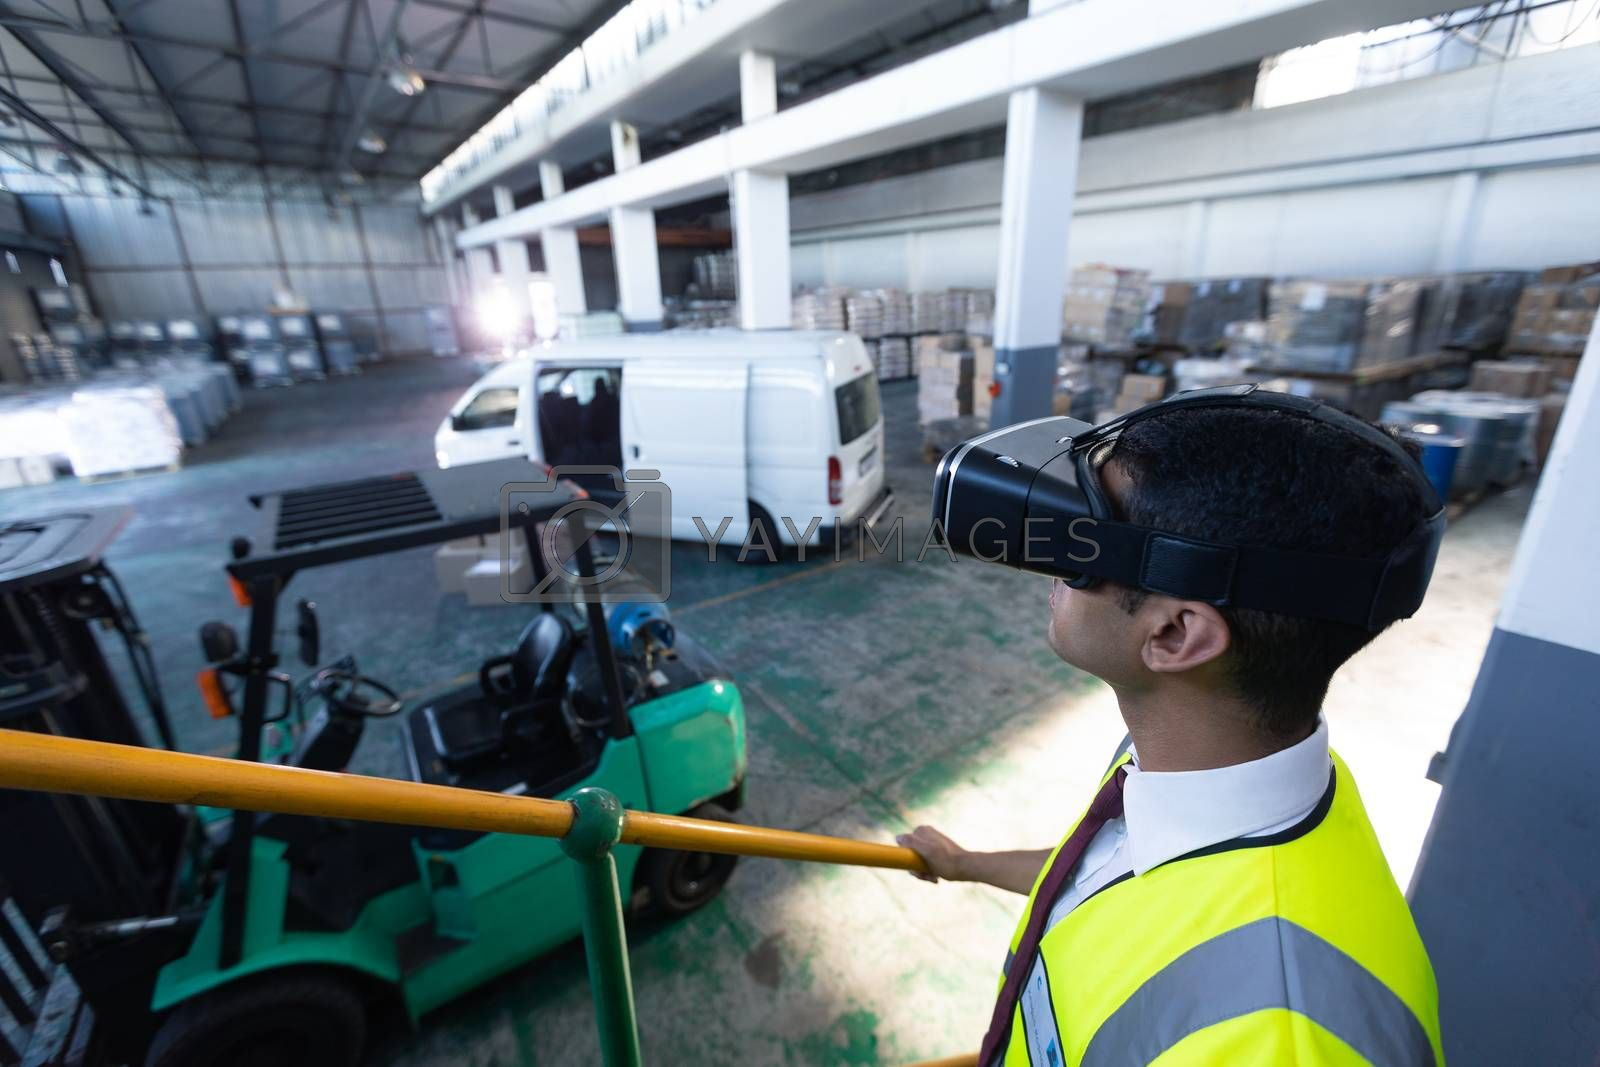 Close-up of Caucasian male supervisor using virtual reality headset in warehouse. This is a freight transportation and distribution warehouse. Industrial and industrial workers concept